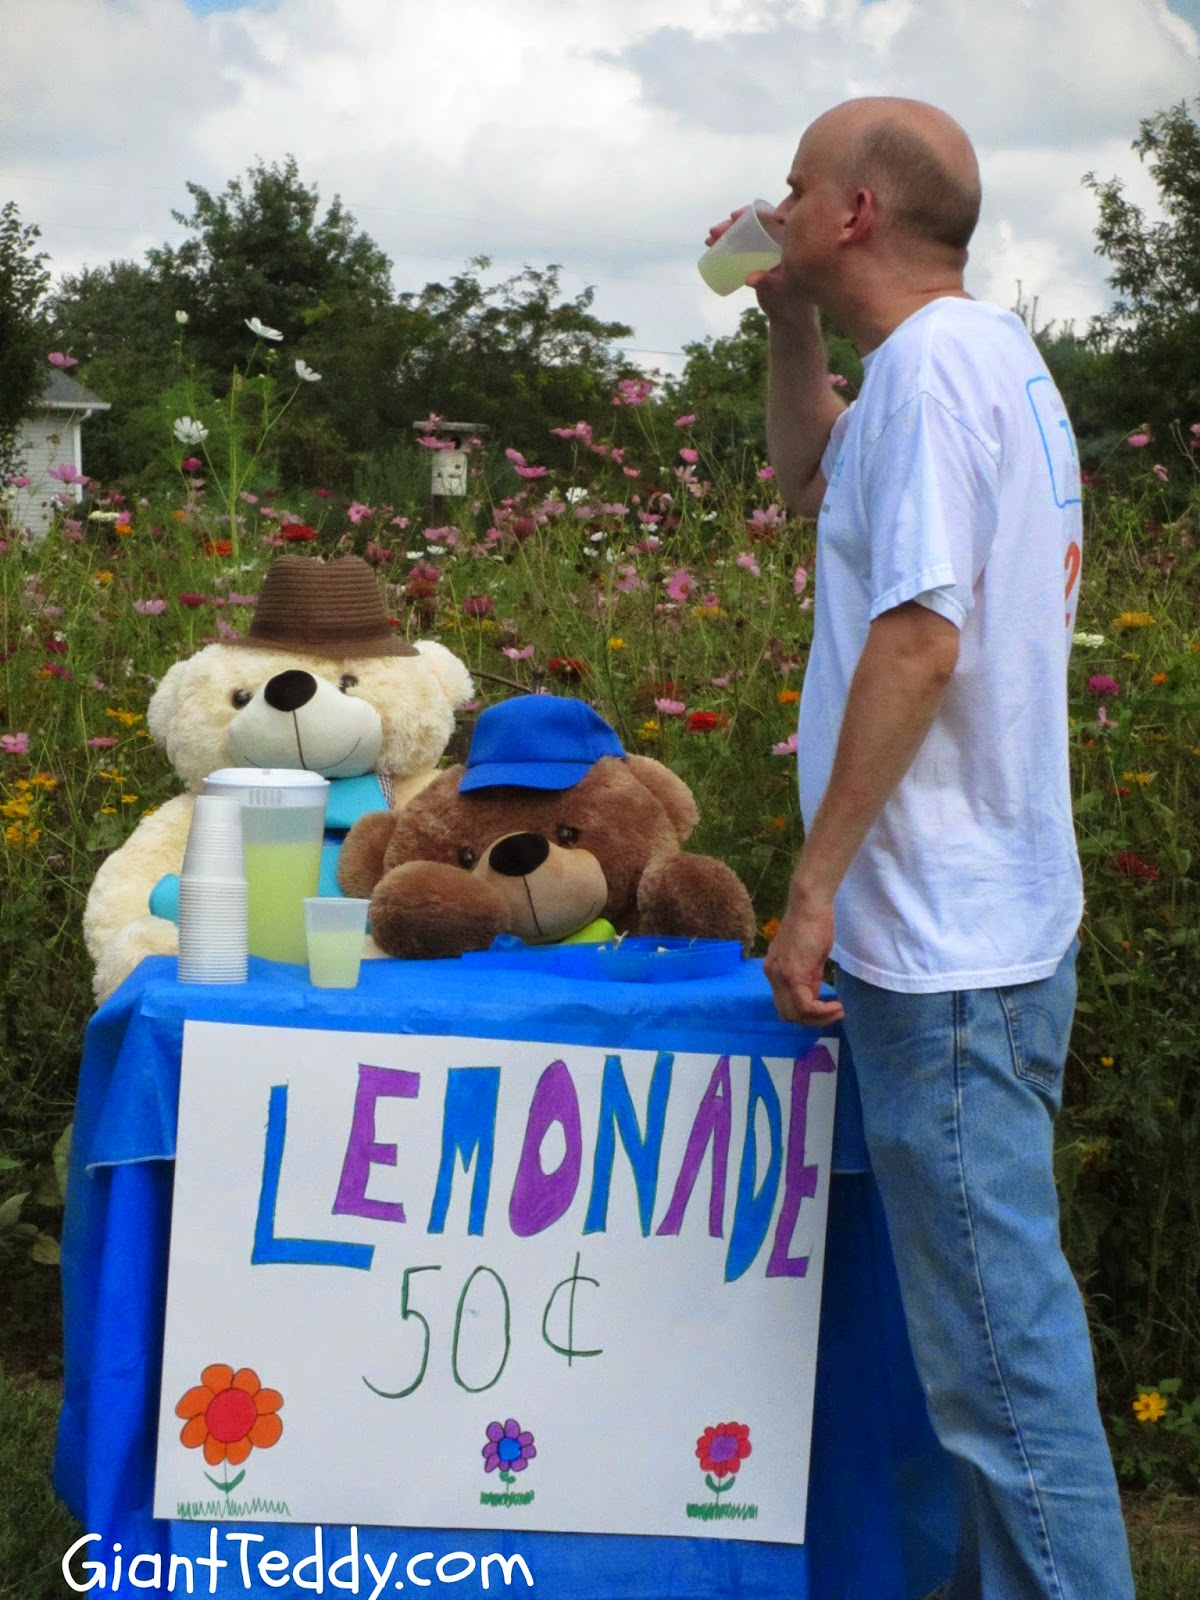 Giant Teddy brand lemonade recipe